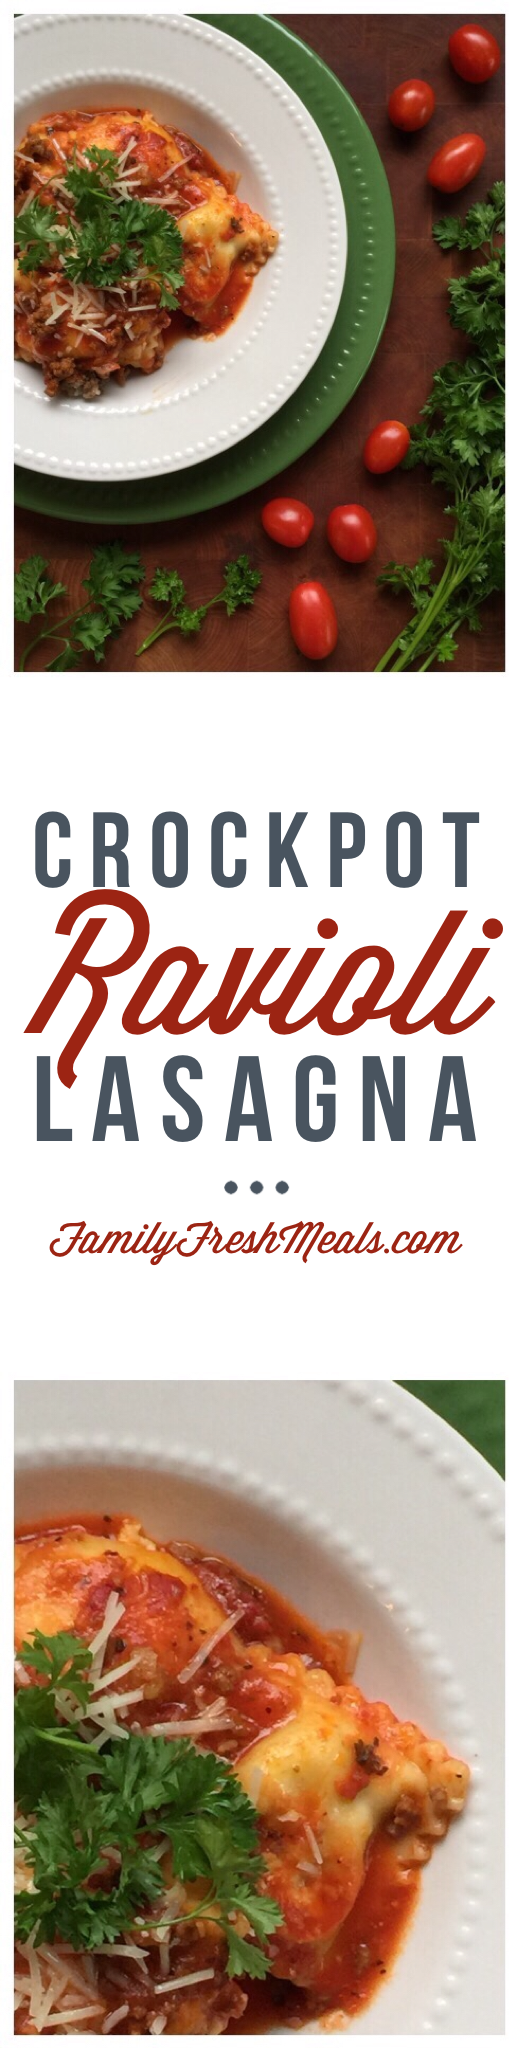 Easy Crockpot Lasagna Ravioli - Family Fresh Meals